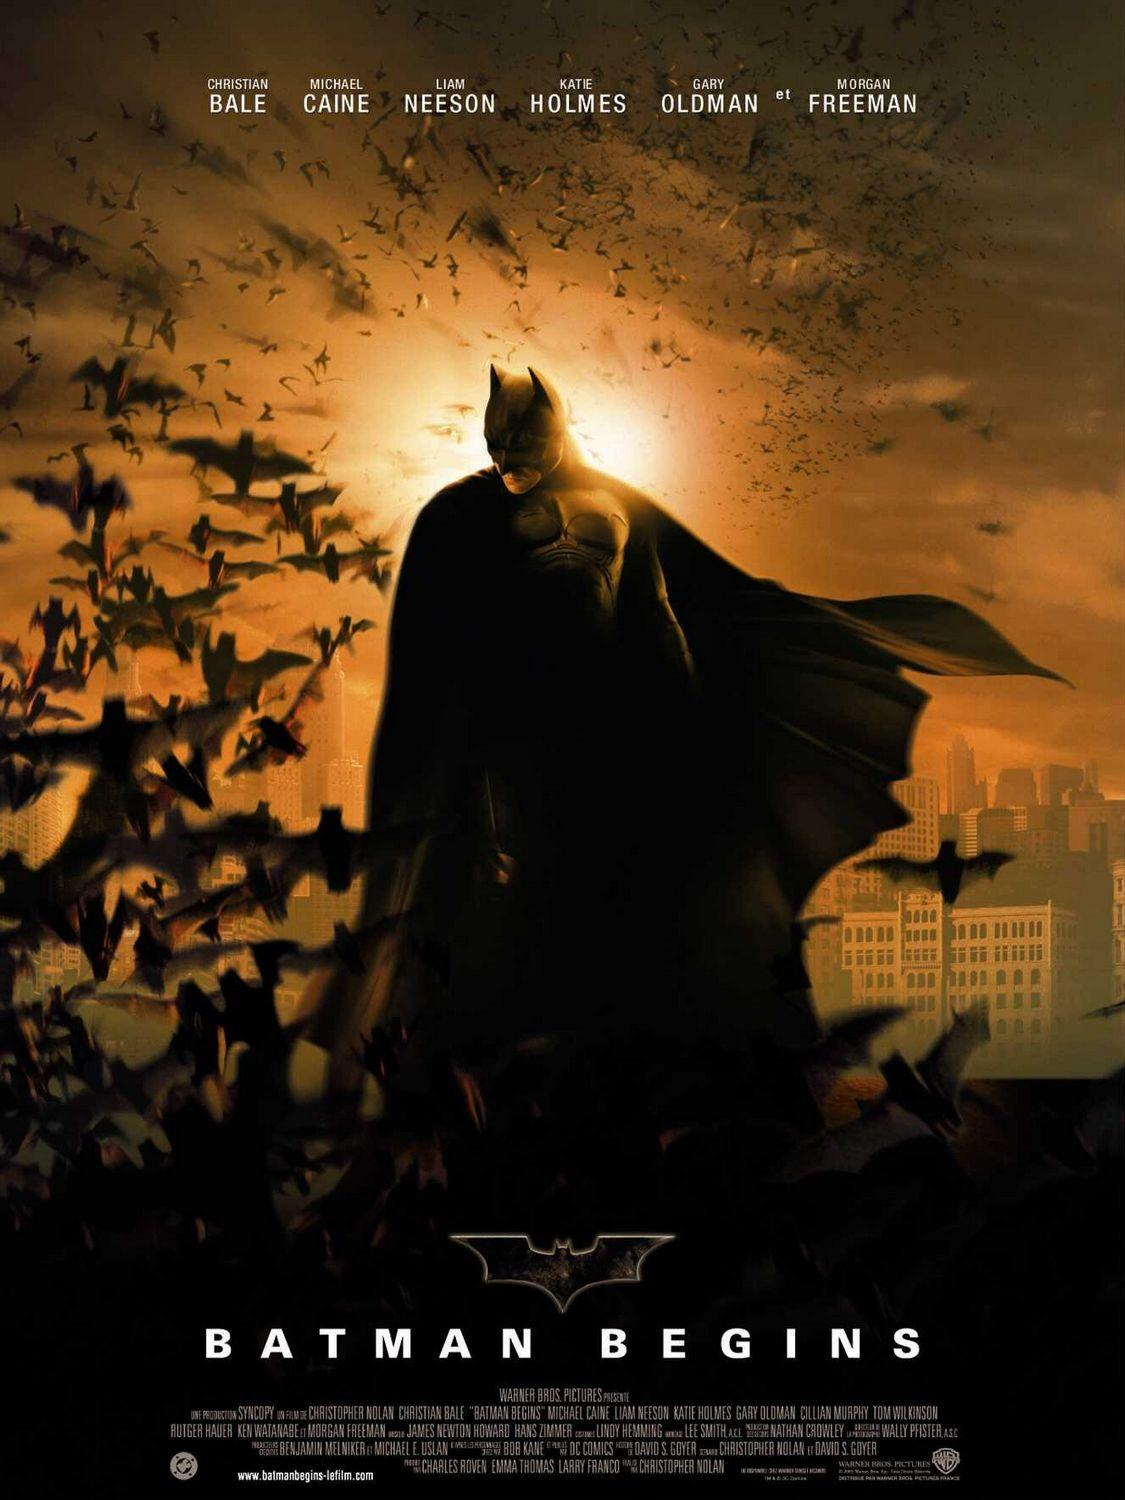 Batman begins remvoed from netflix this september